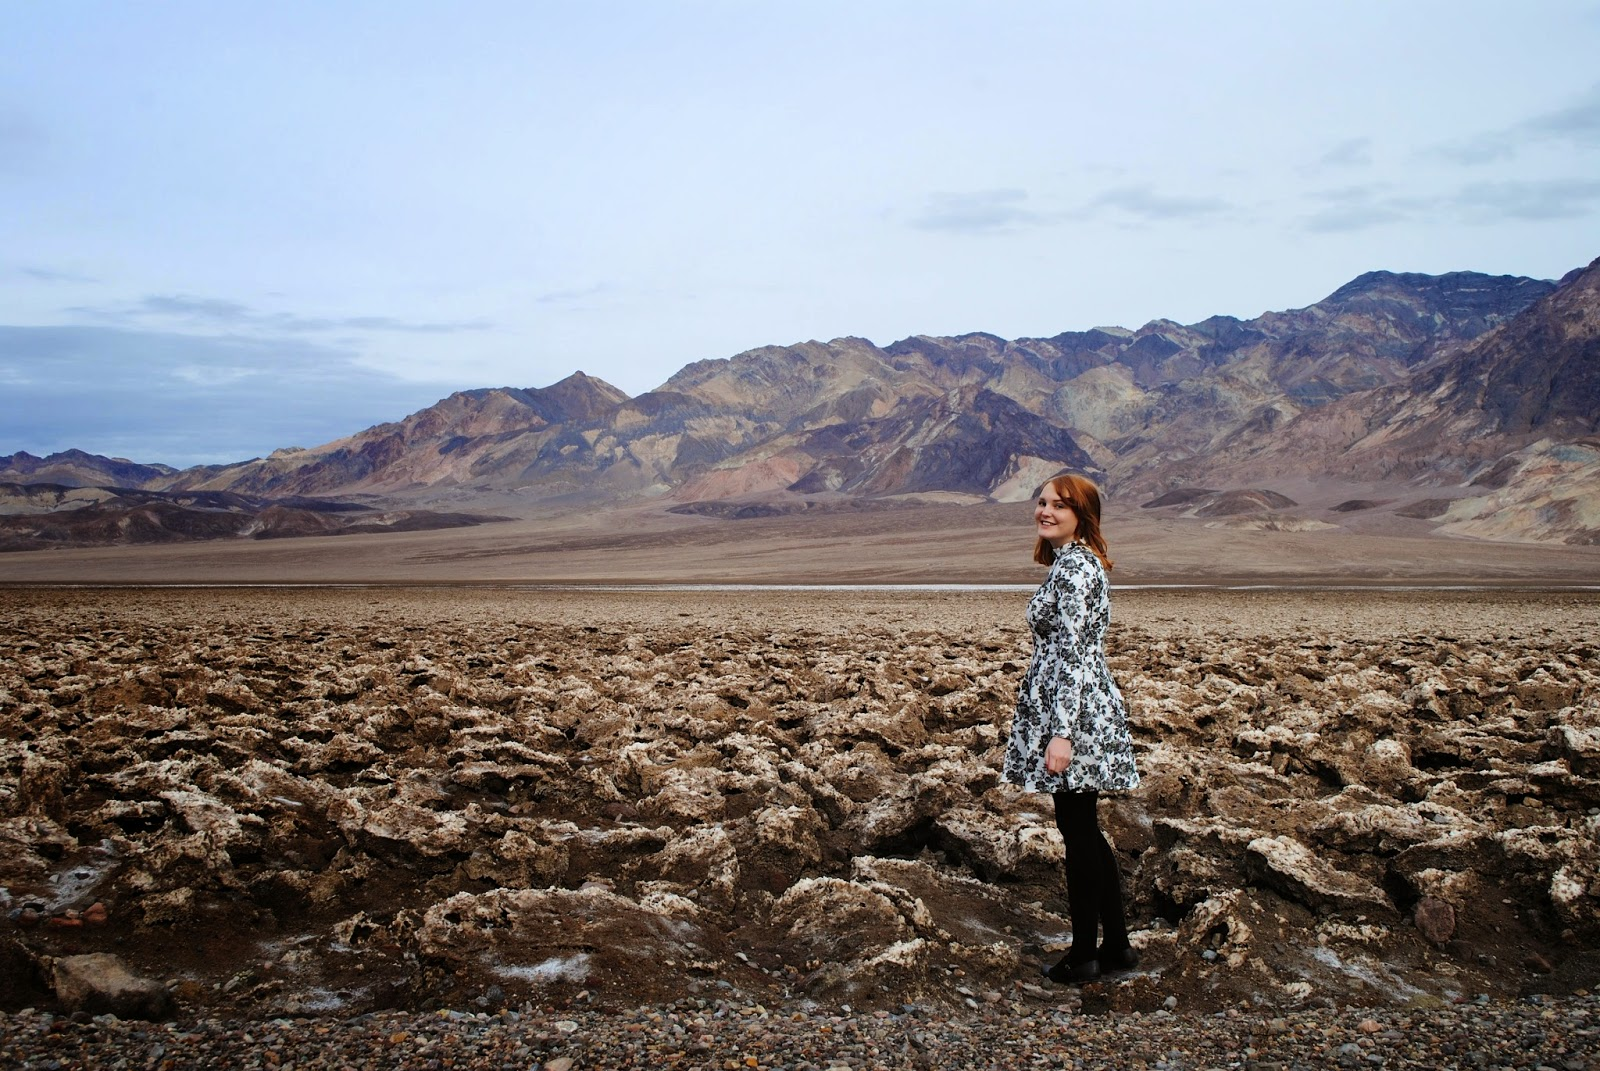 Visiting the Mars Like Landscape of Death Valley National Park on a day trip from Las Vegas